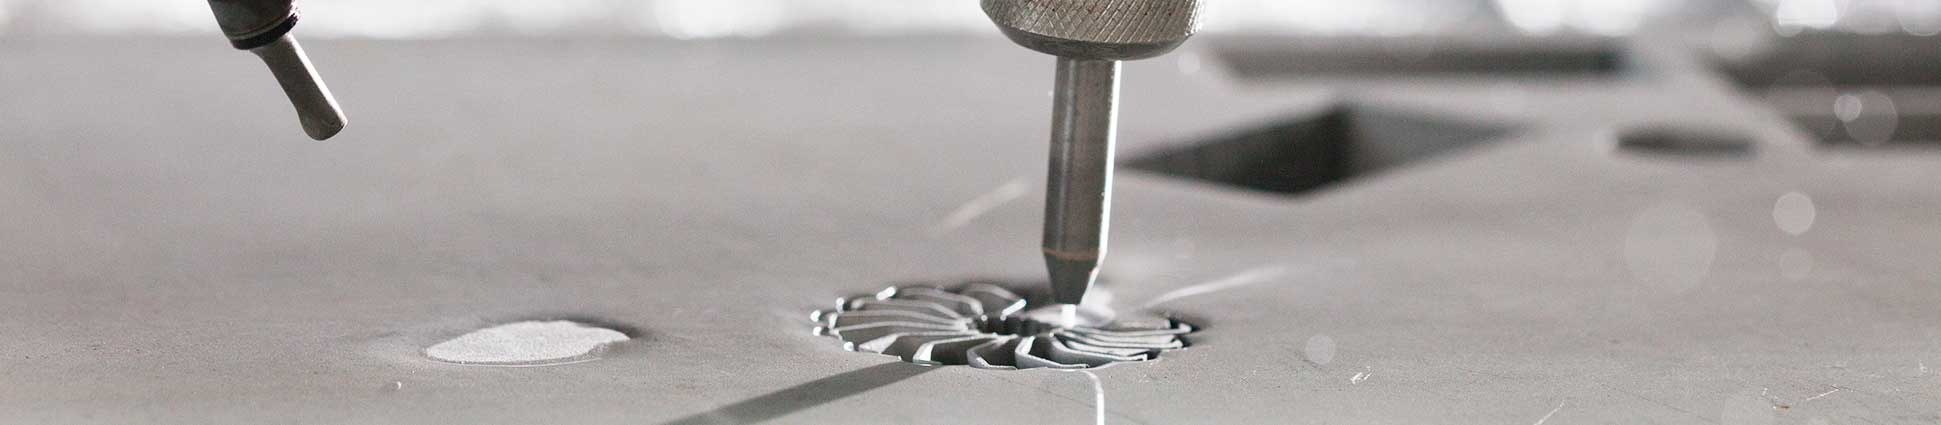 Flow waterjet cutting cylindrical metal part with blades spiraling out from center.